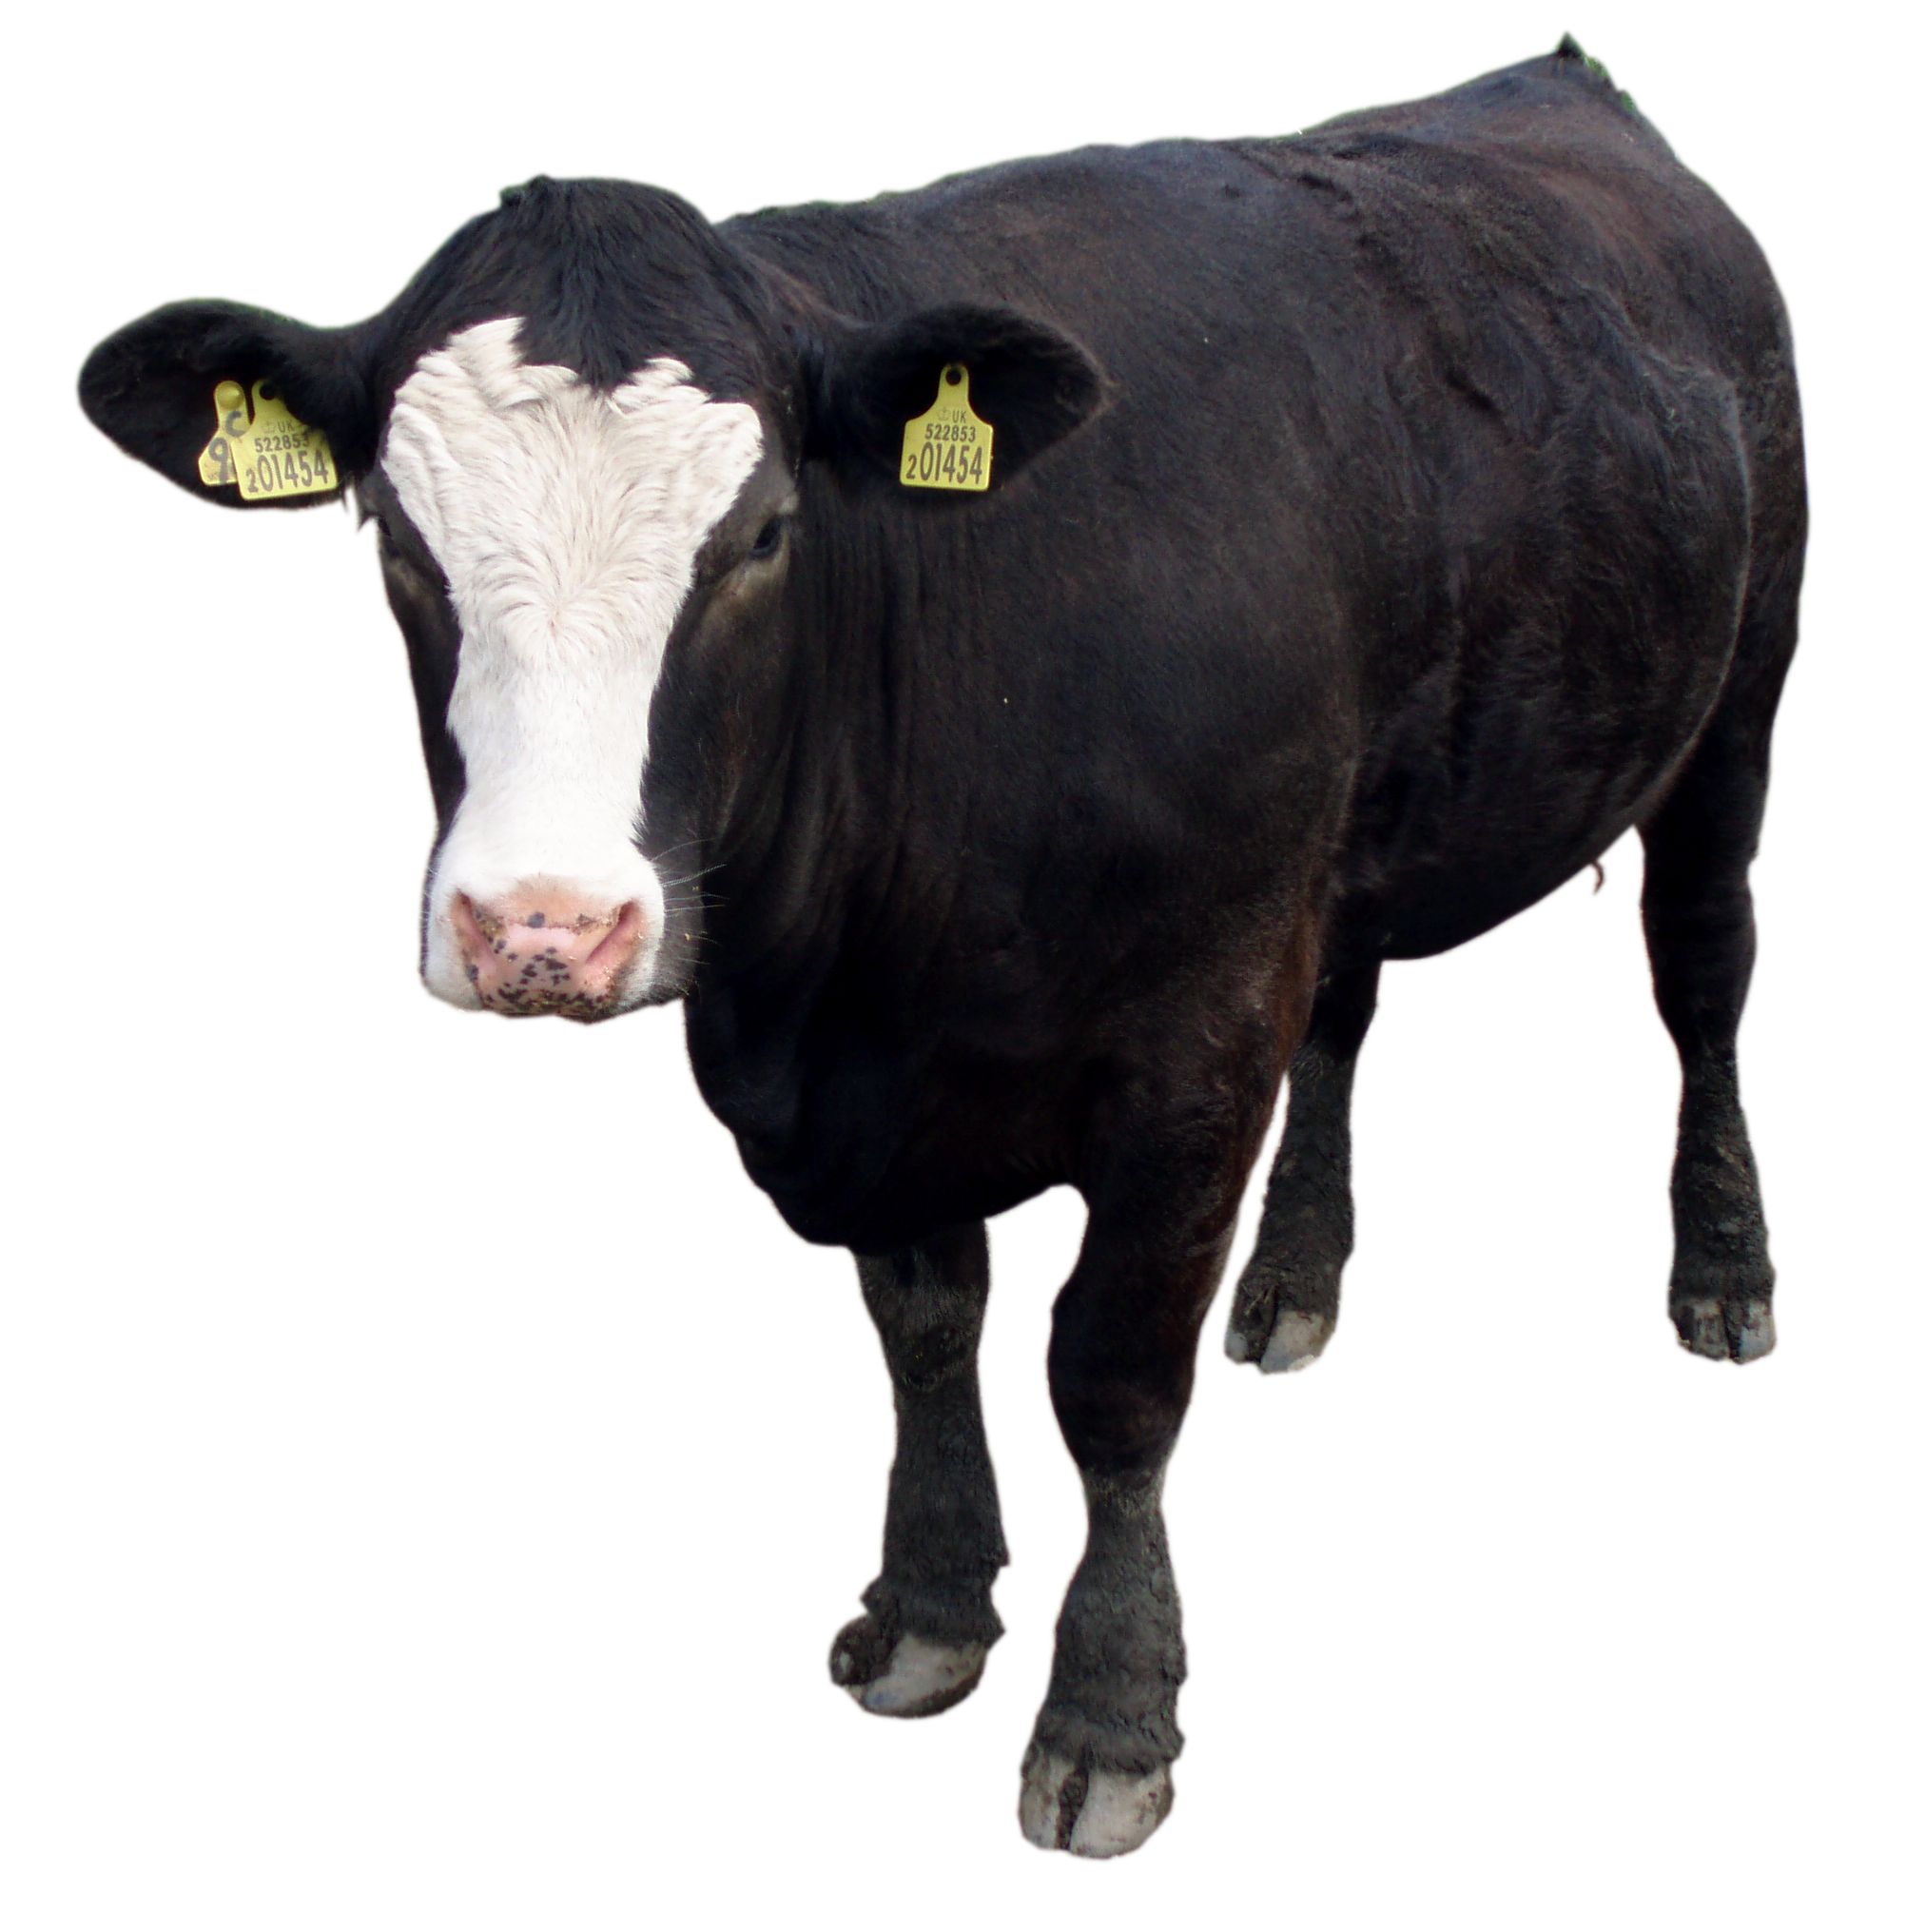 Cow Png - Black cow PNG image, download picture